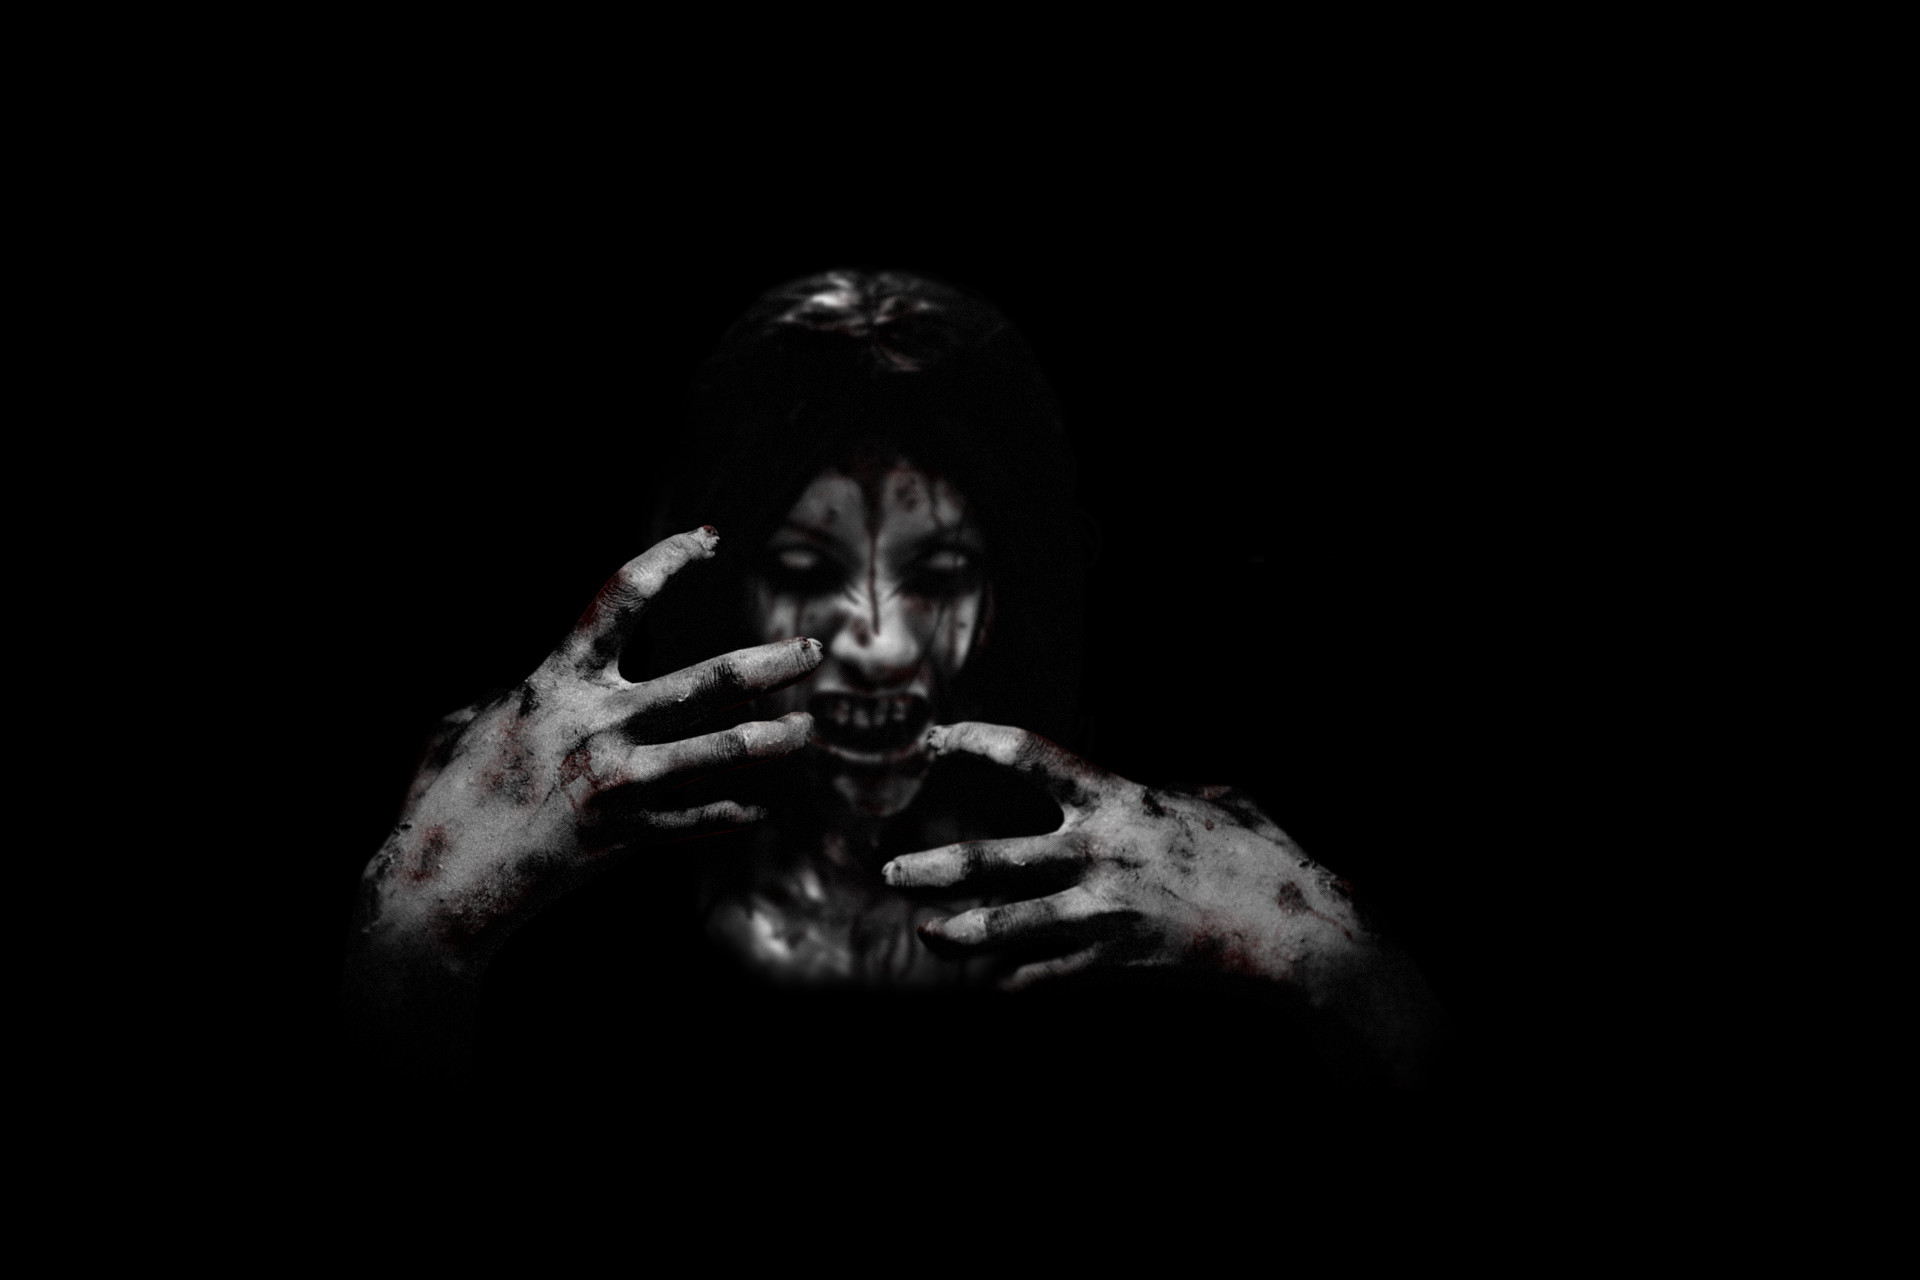 Res: 1920x1280, the, face, creepy, monster, wallpaper,colourful, black, funny images,  blood, horror, movies, demon, humor background images, view, house, ...